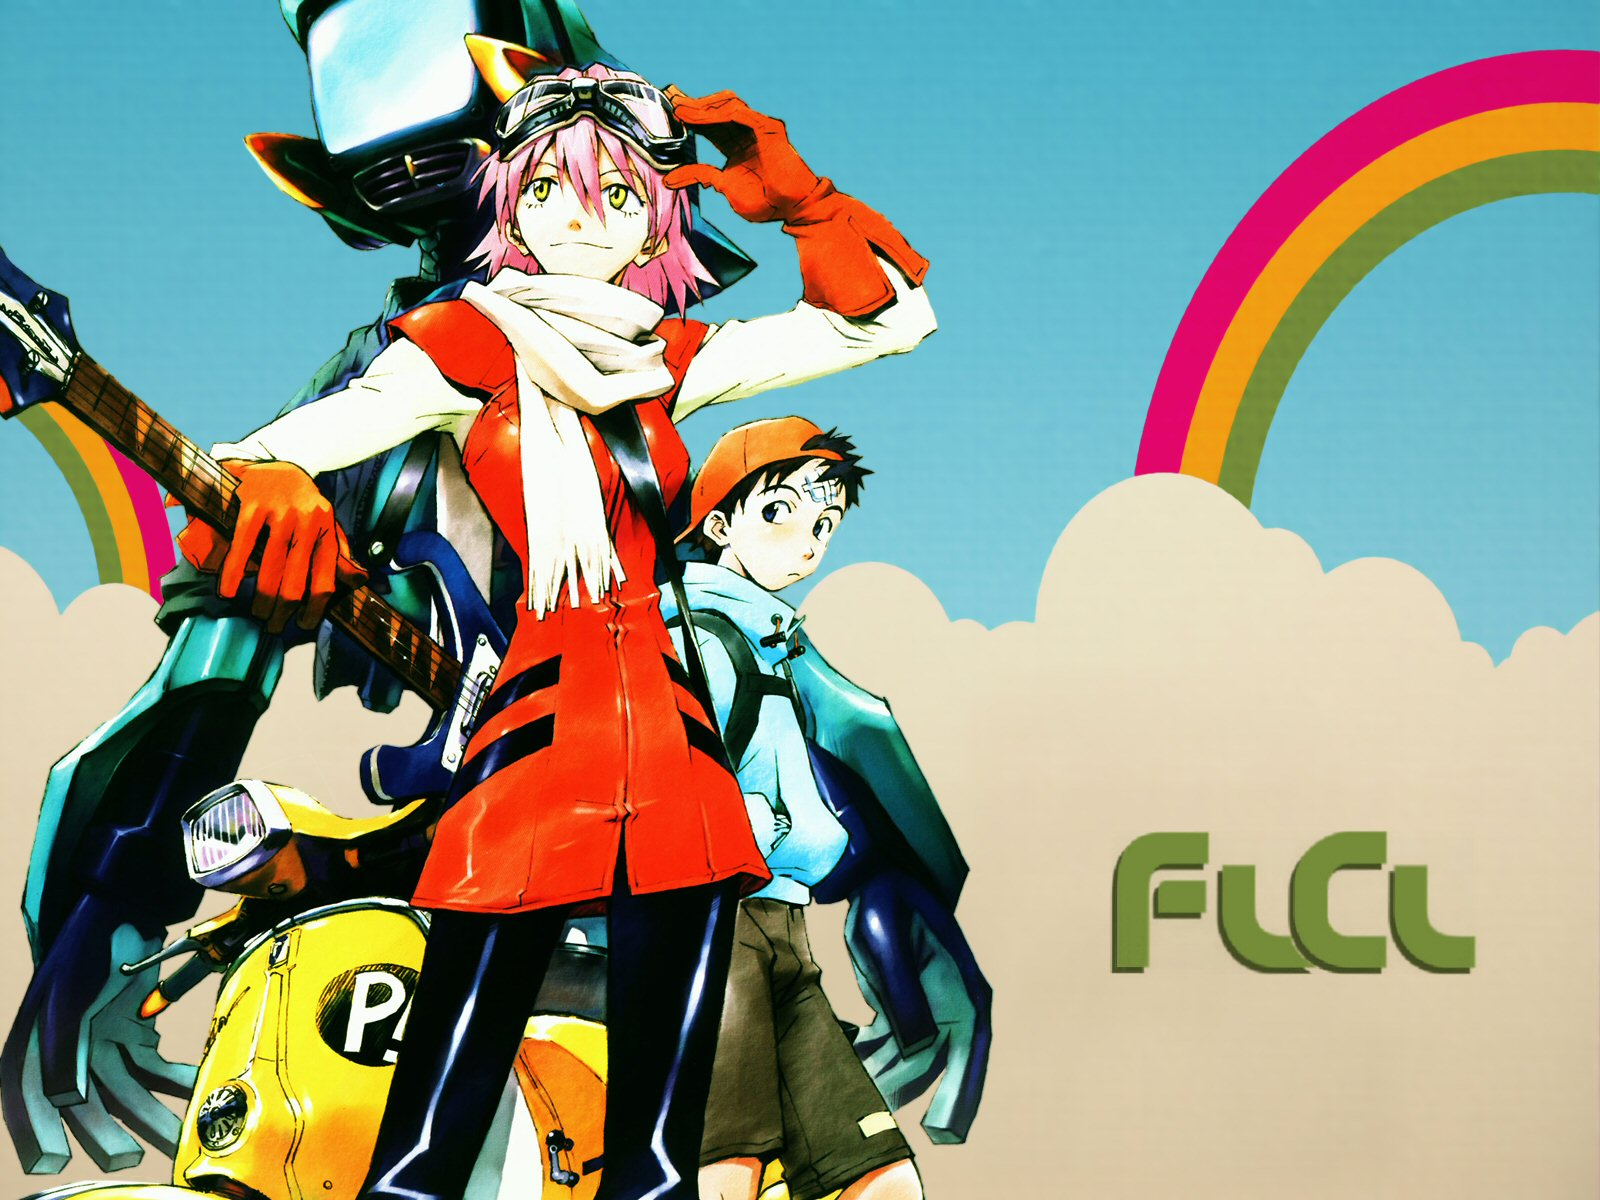 Flcl a coming of age anime not for the casual viewer - Flcl wallpaper ...